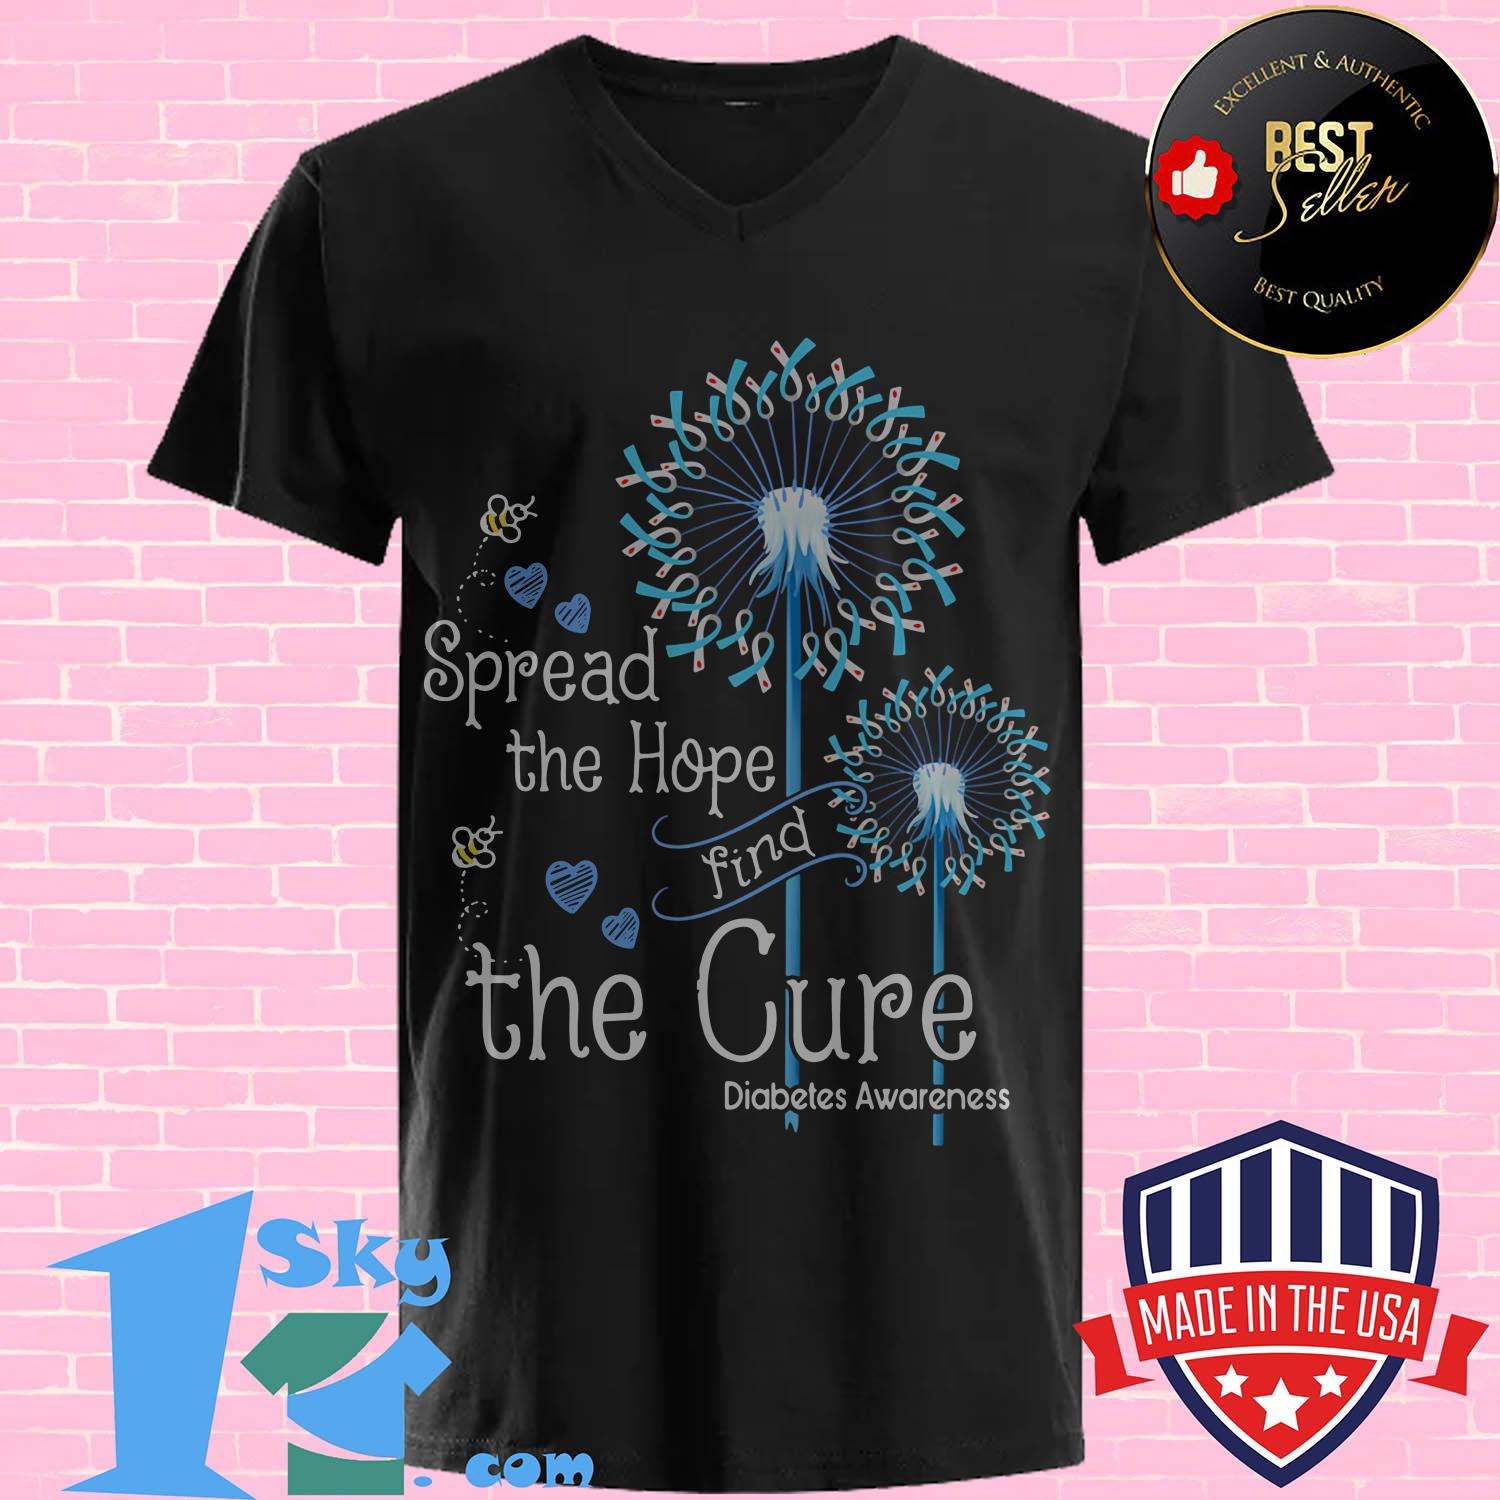 pread the hope find the cure diabetes awareness dandelion v neck - Spread the hope find the cure diabetes awareness dandelion shirt